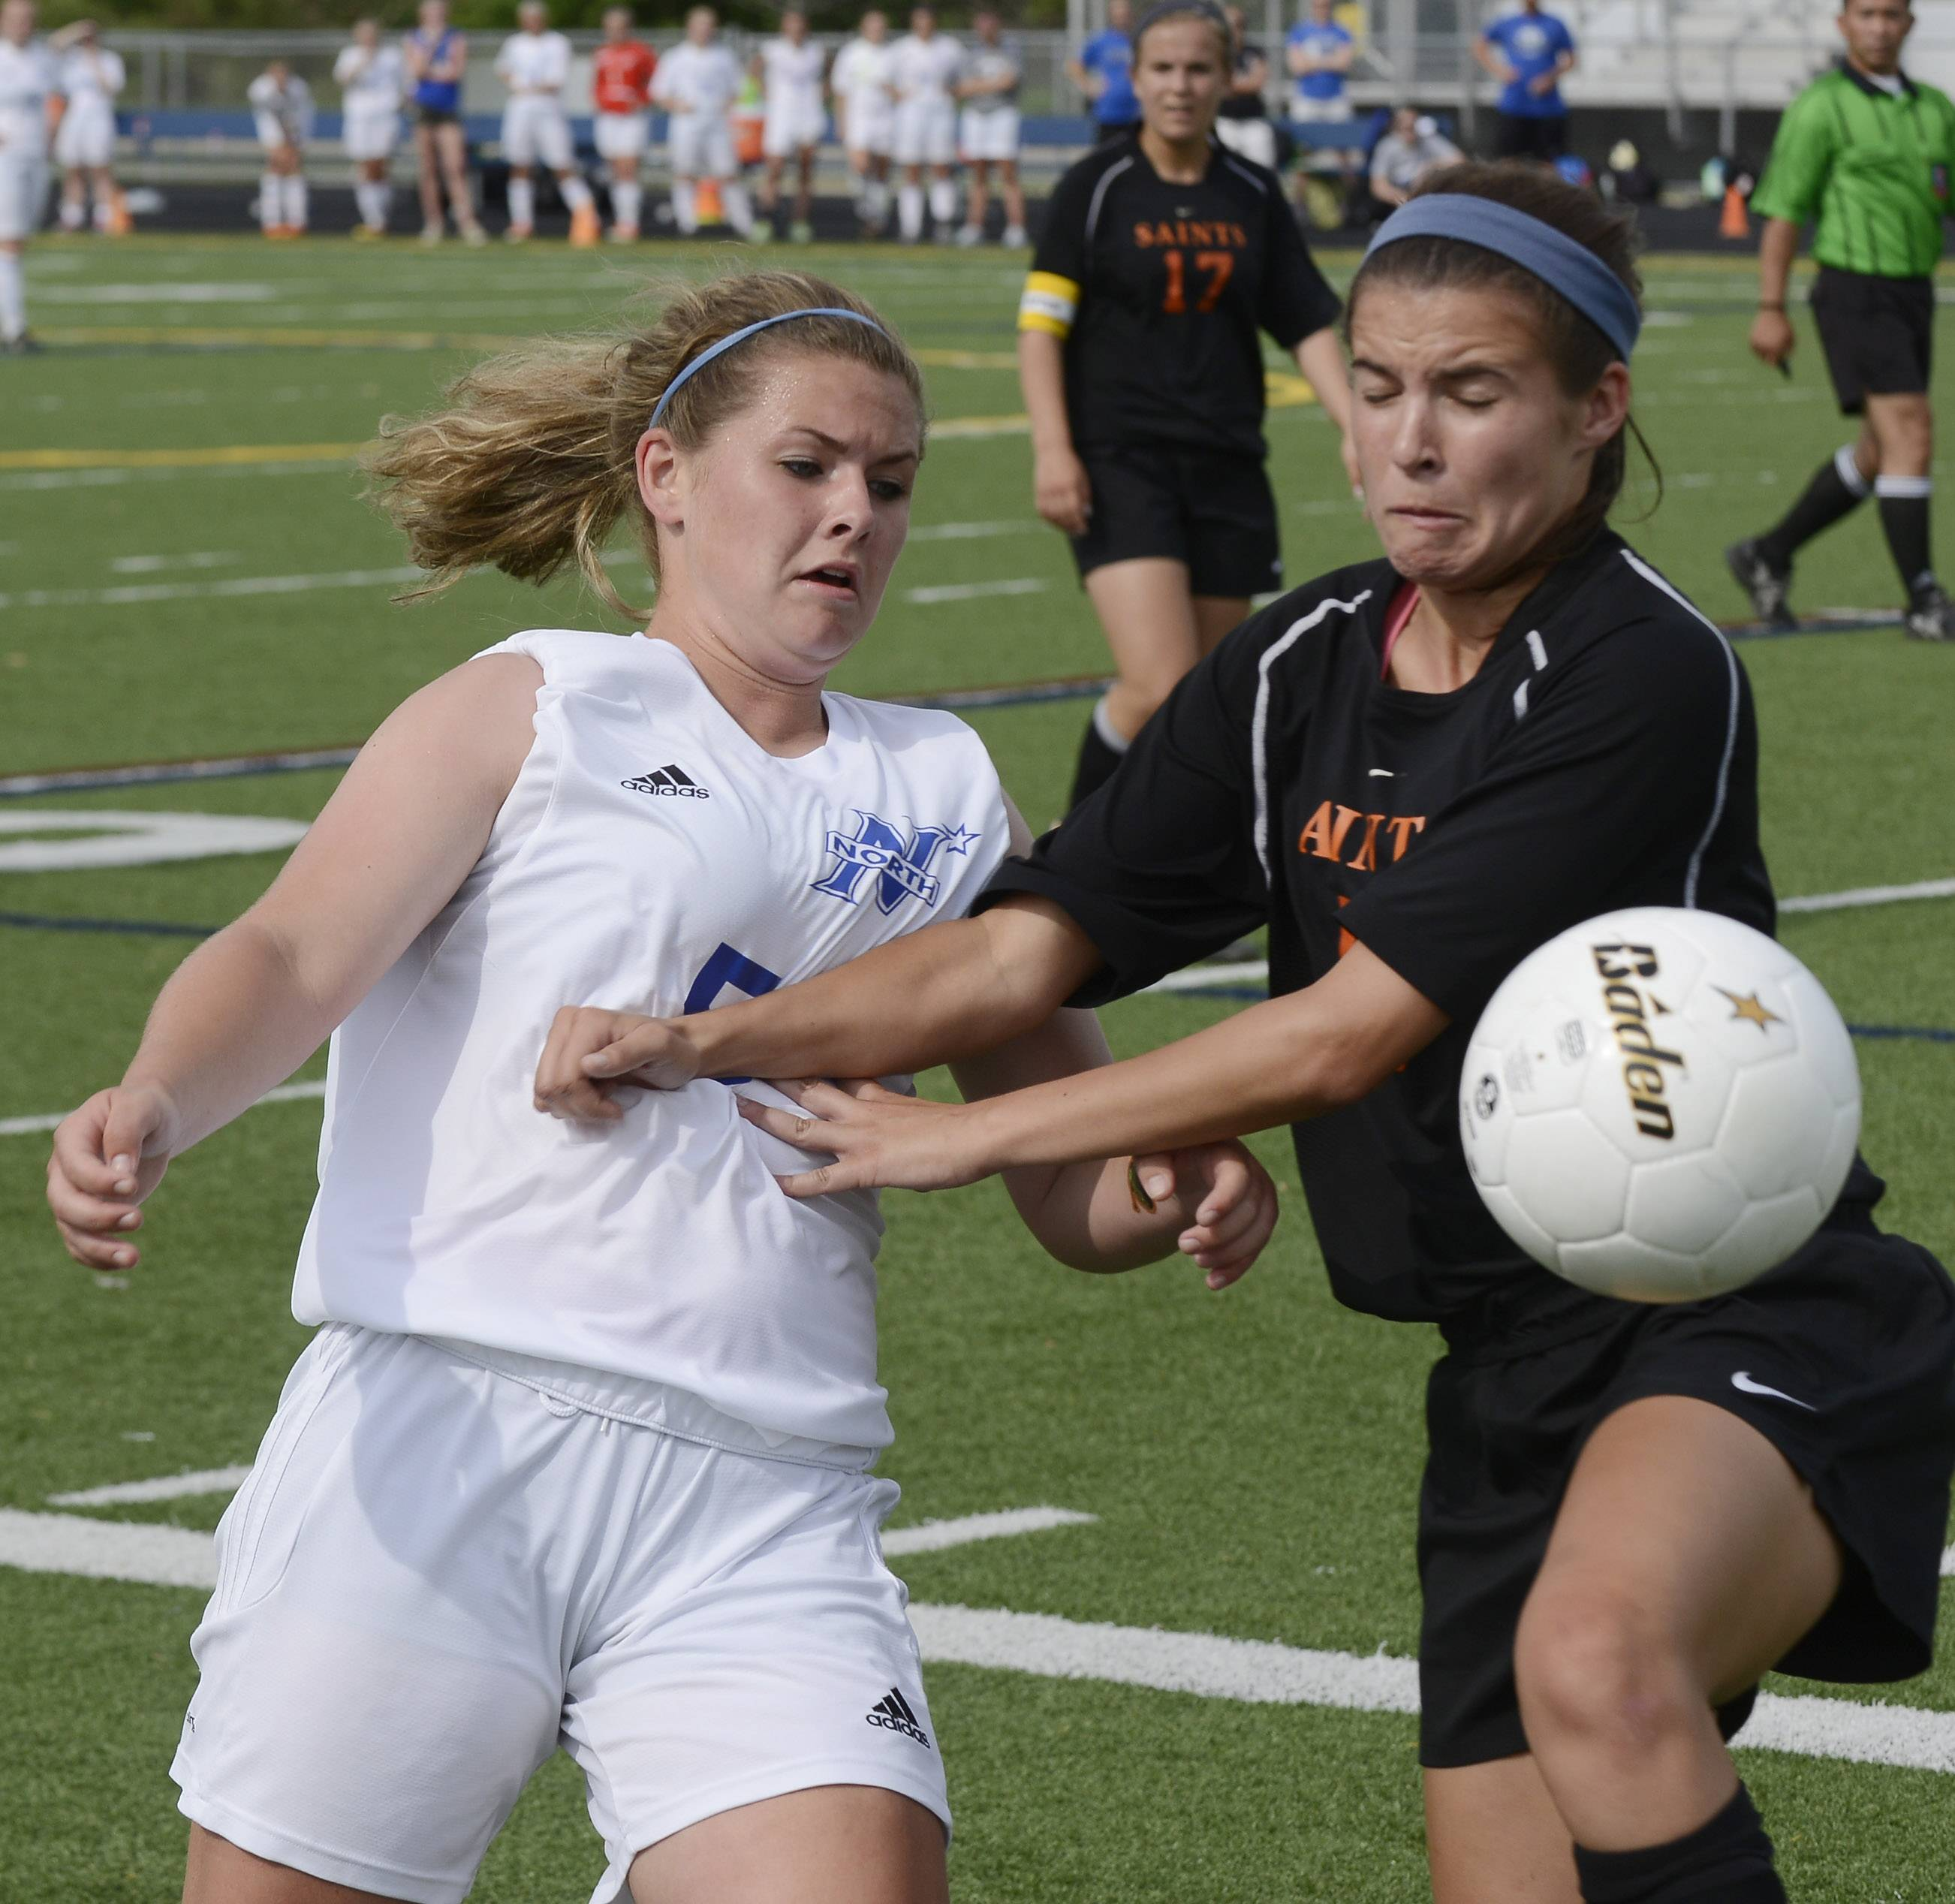 Hannah Durocher, left, of St. Charles North and Shannon Rasmussen of St. Charles East battle for the ball Tuesday.